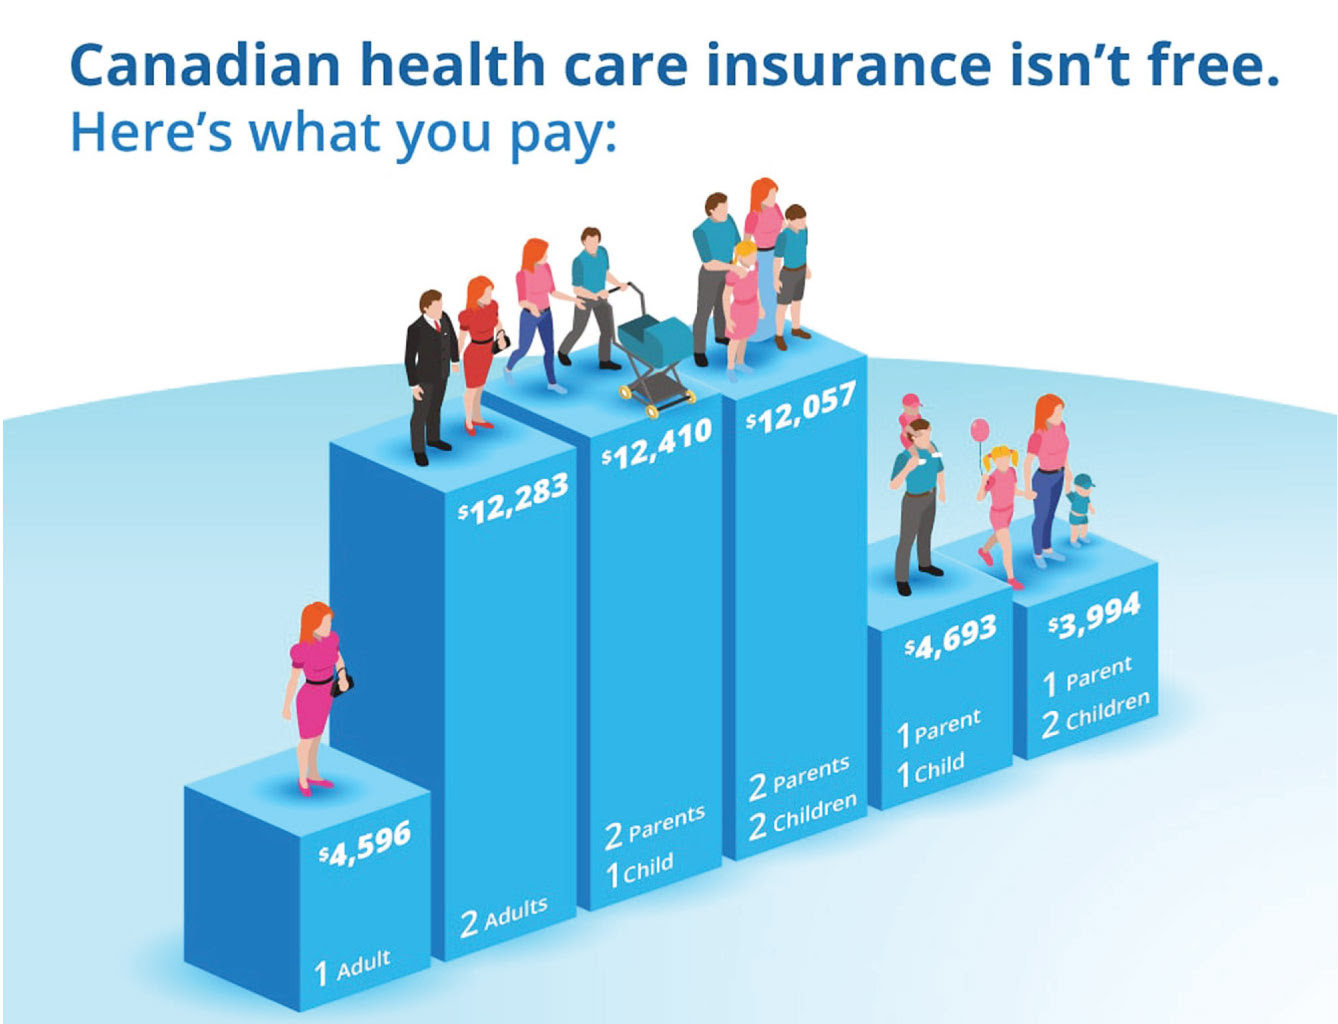 Let's talk about the price of public health care in Canada ...